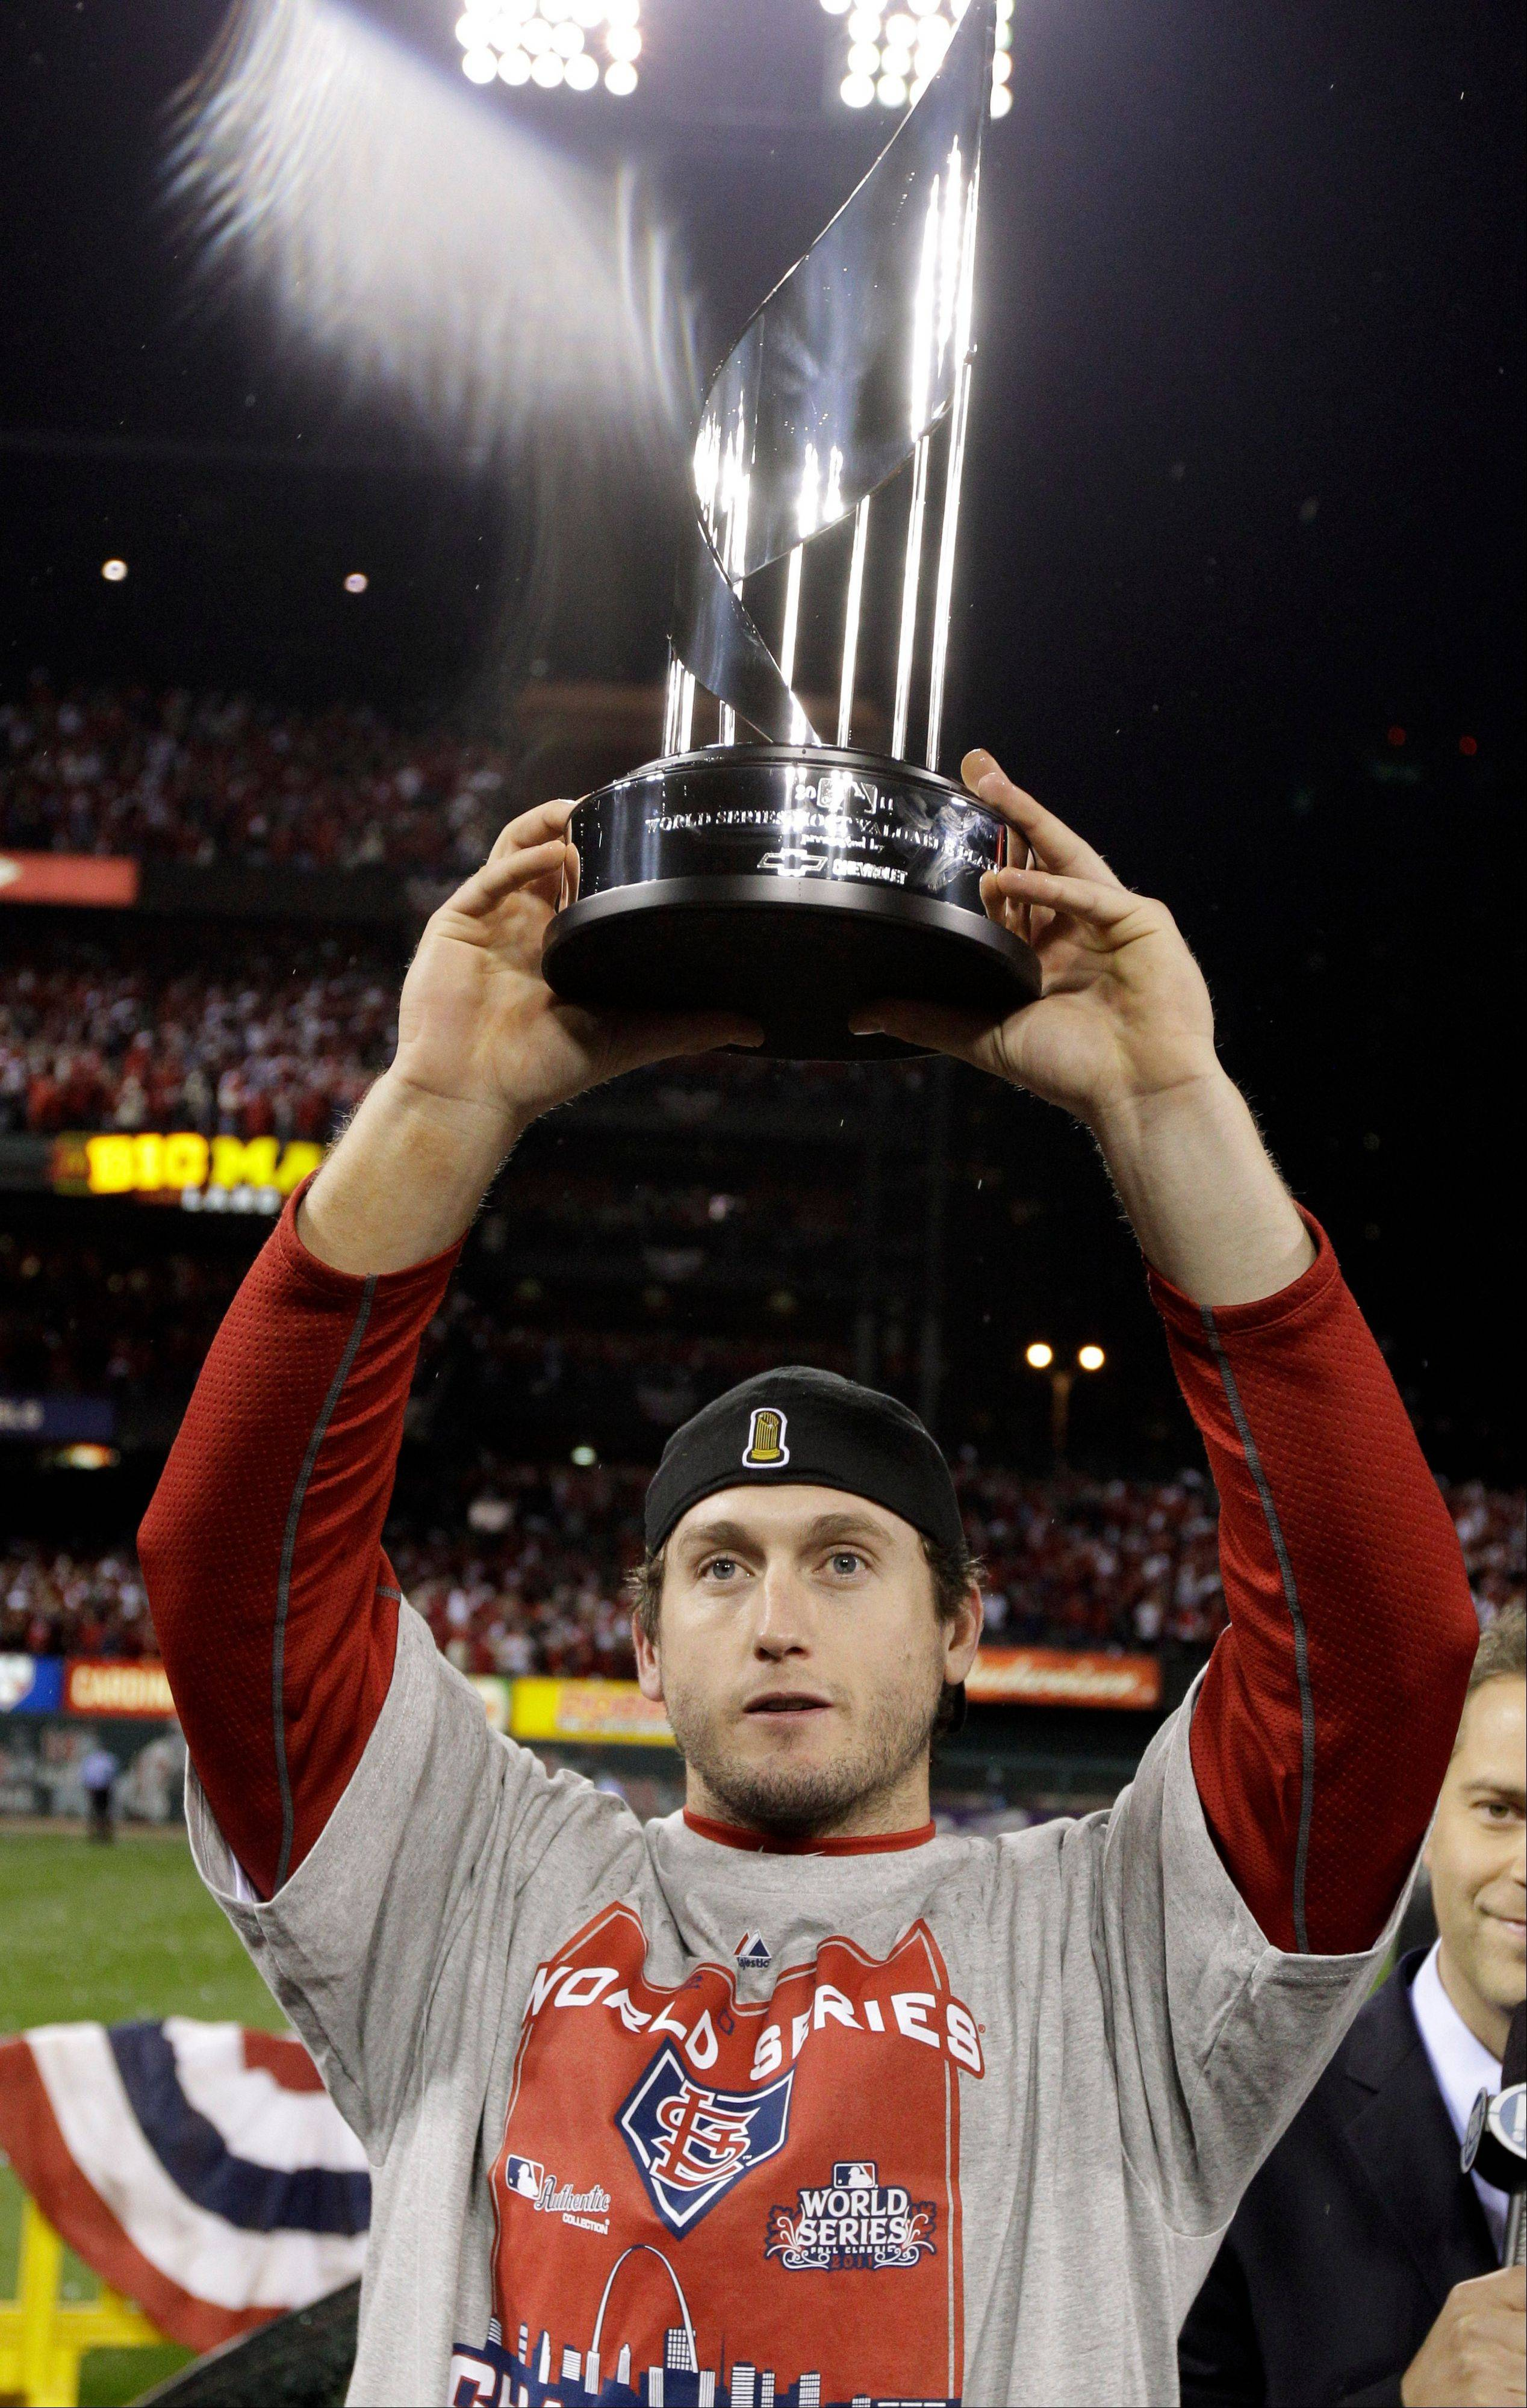 Cardinals third baseman David Freese won the MVP trophy in the 2011 World Series.